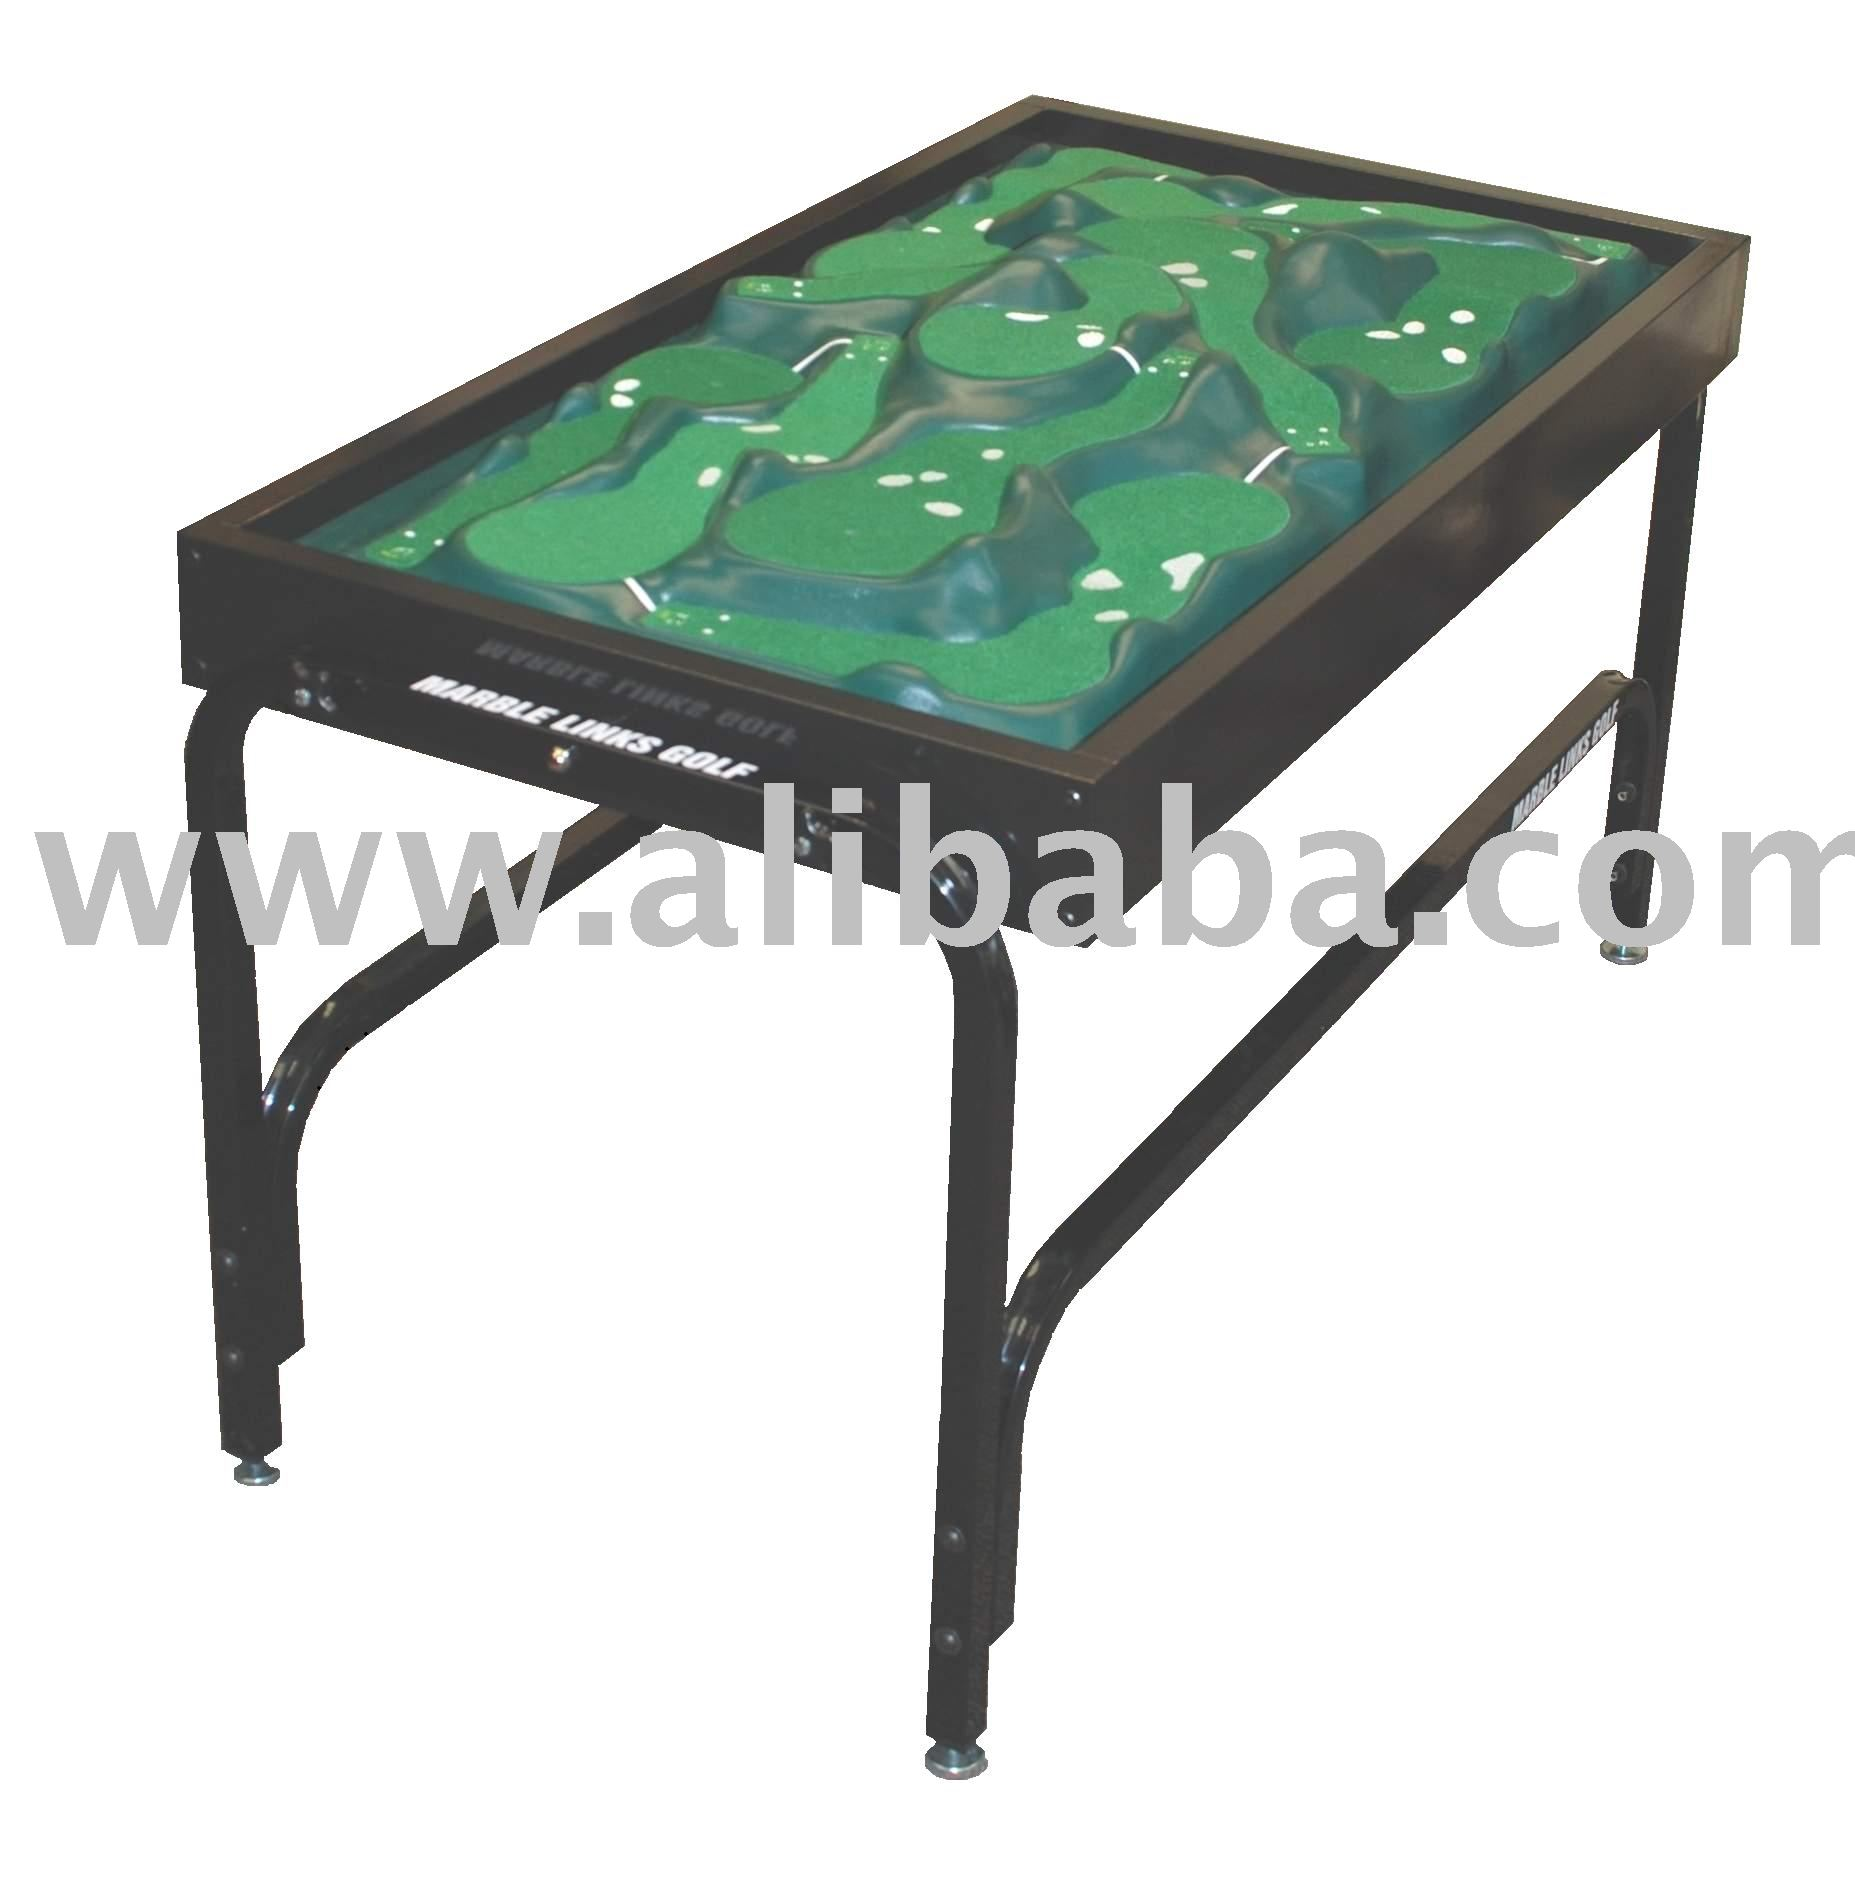 Marble Links Golf Table Golf Game Buy Golf Product on Alibaba